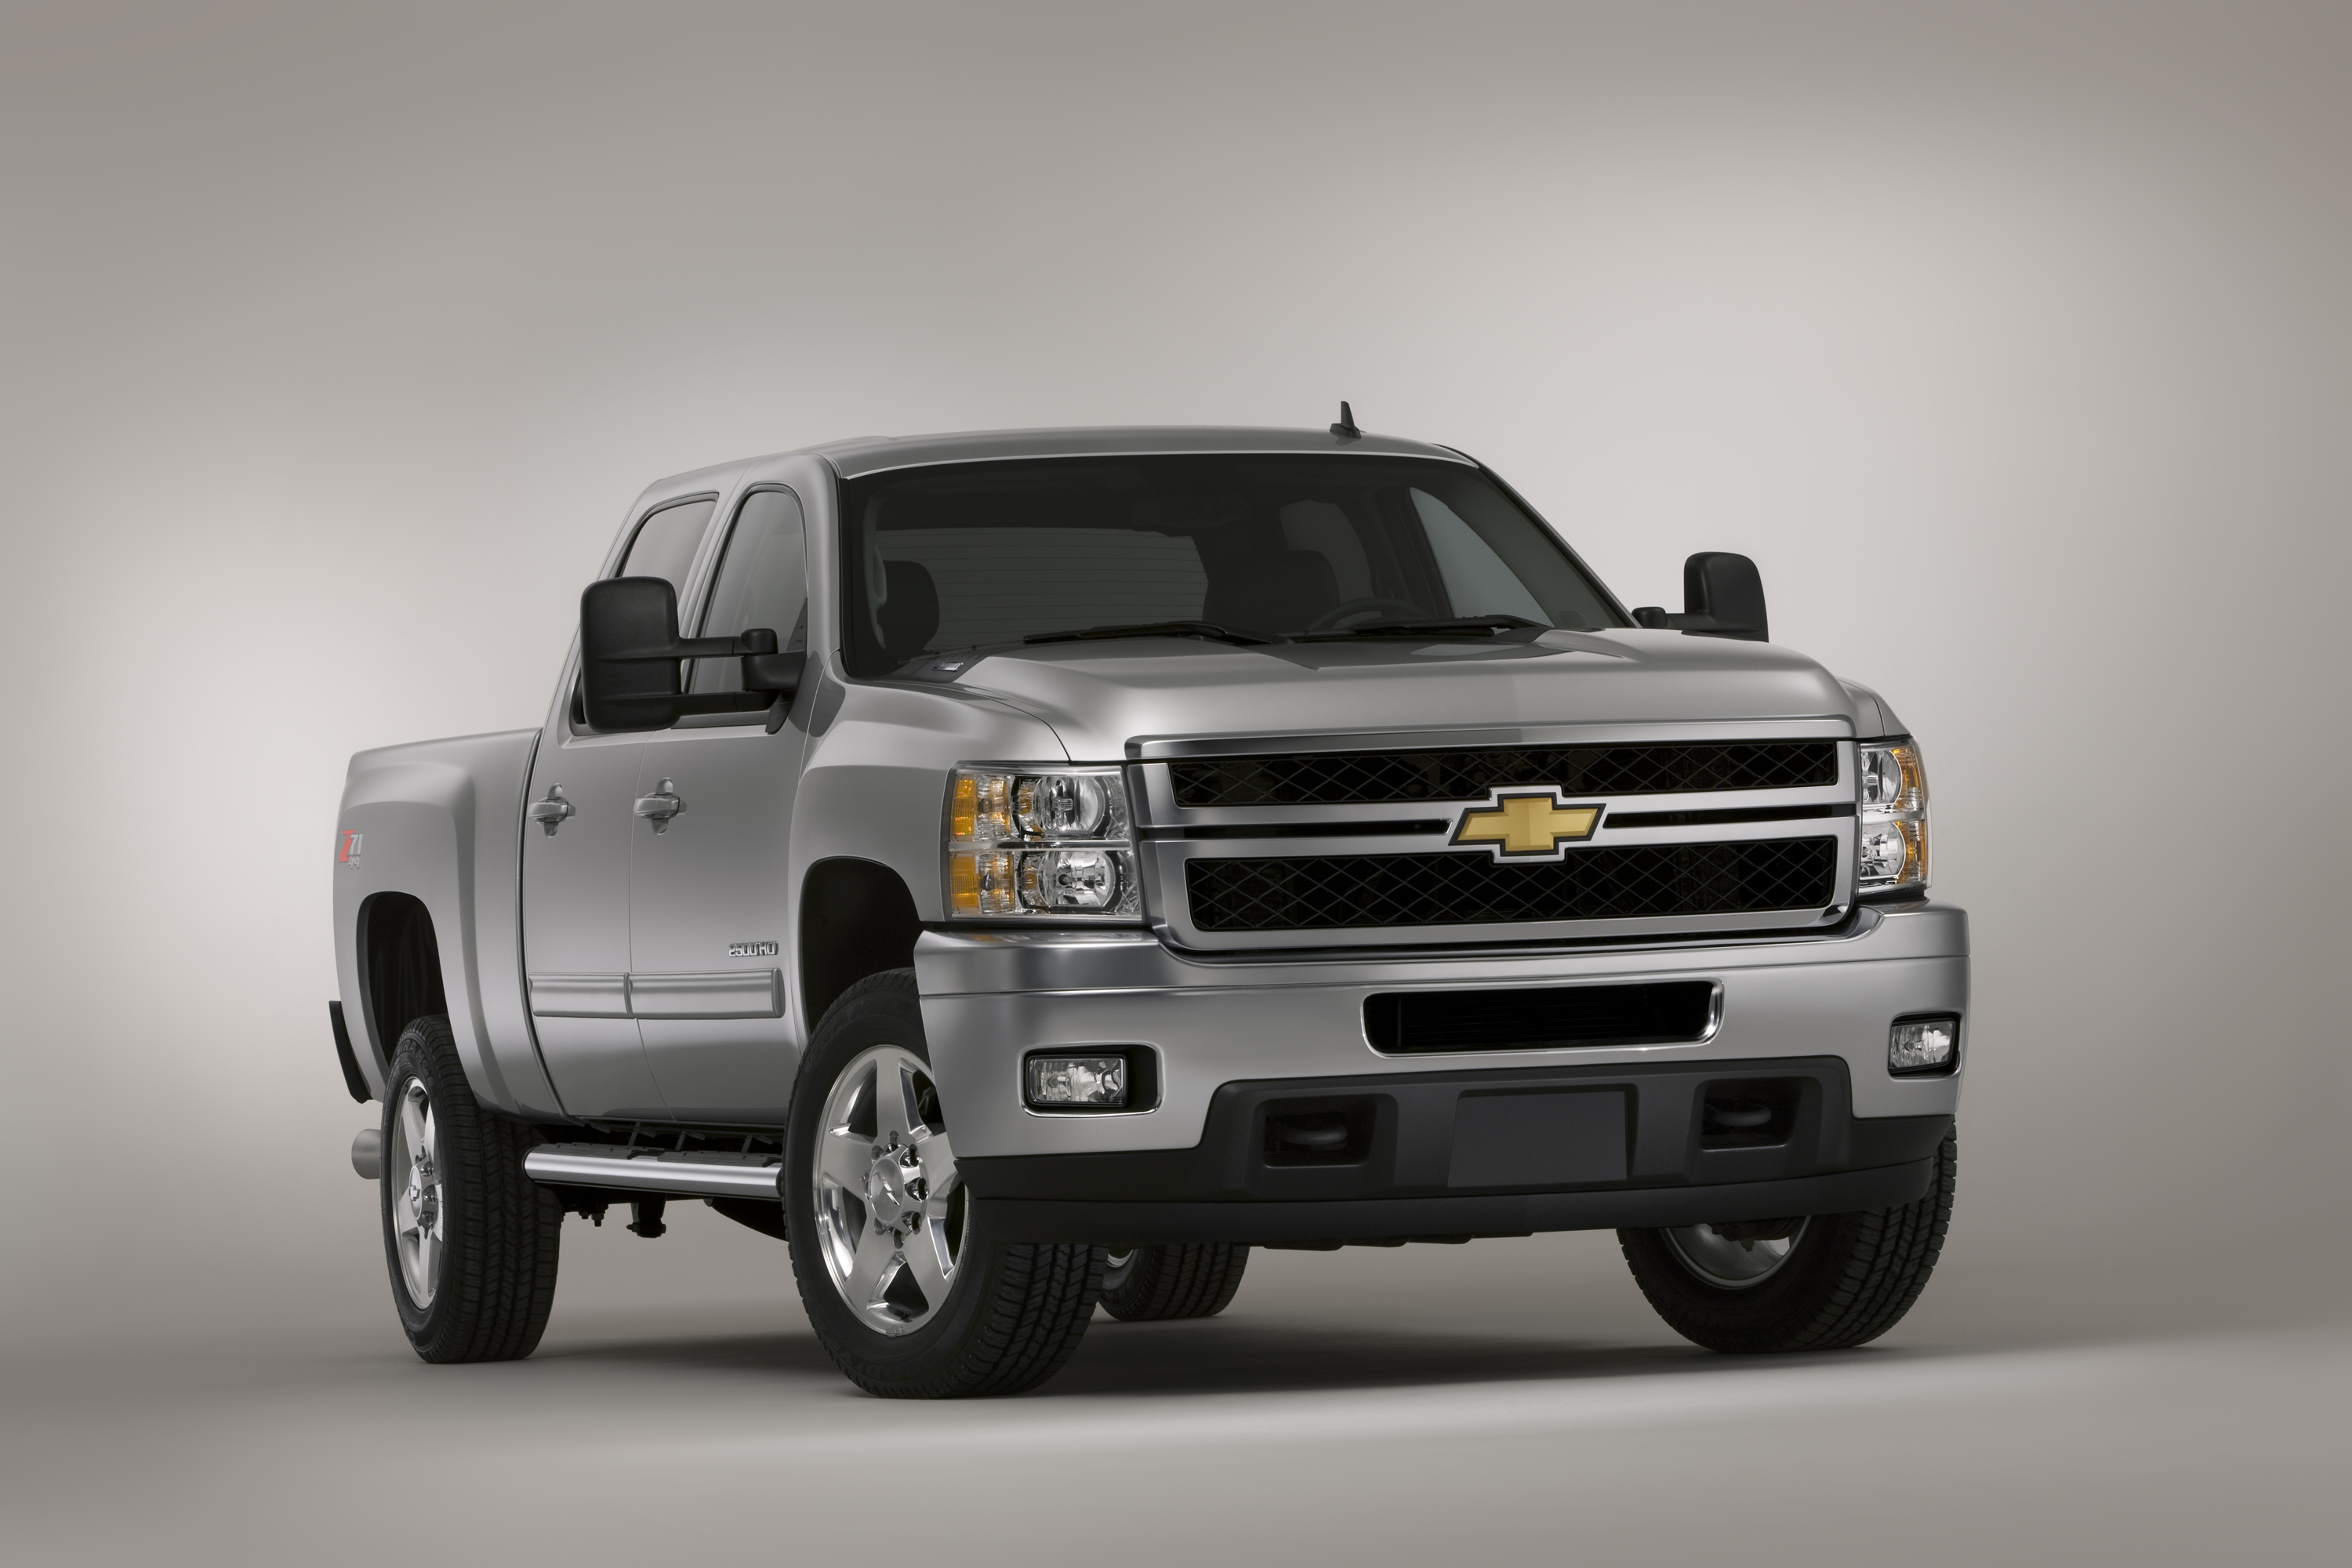 2011 chevy silverado heavy duty stronger and sturdier truck talk groovecar. Black Bedroom Furniture Sets. Home Design Ideas